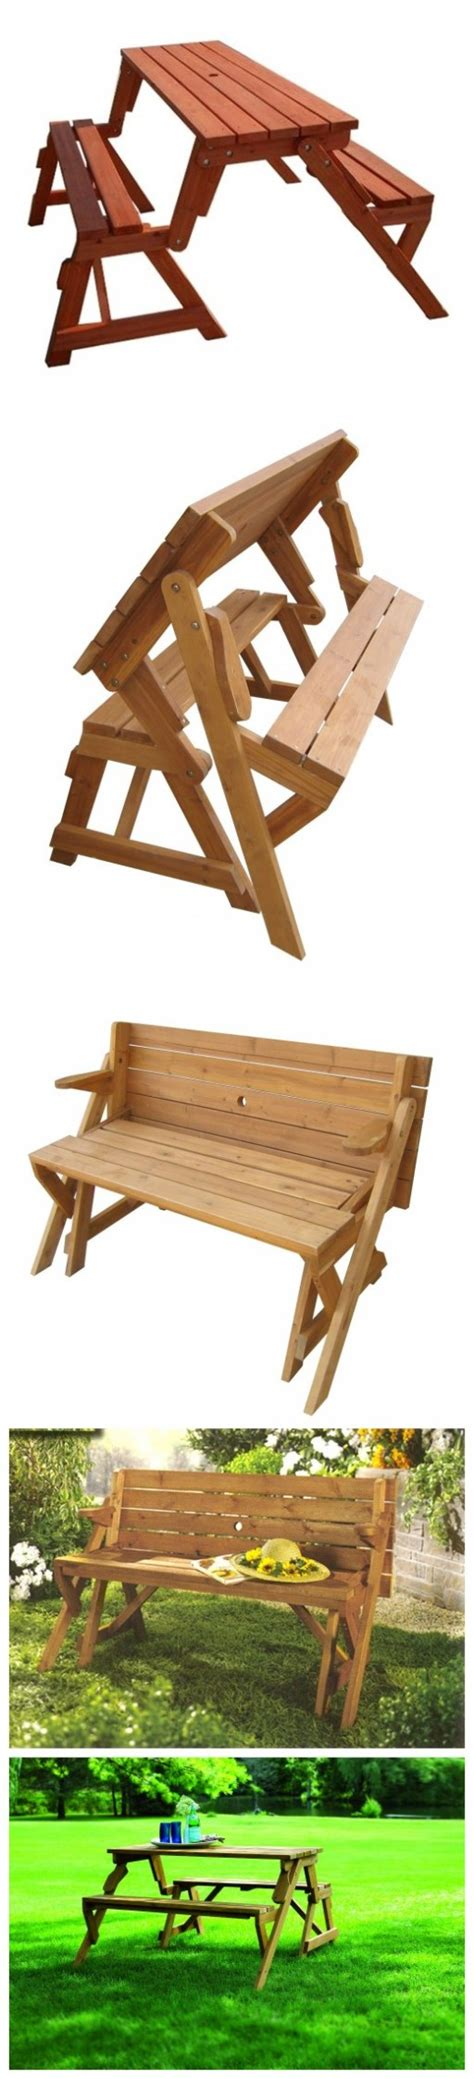 diy folding adirondack chair plans how to build picnic table bench combo wood project plans